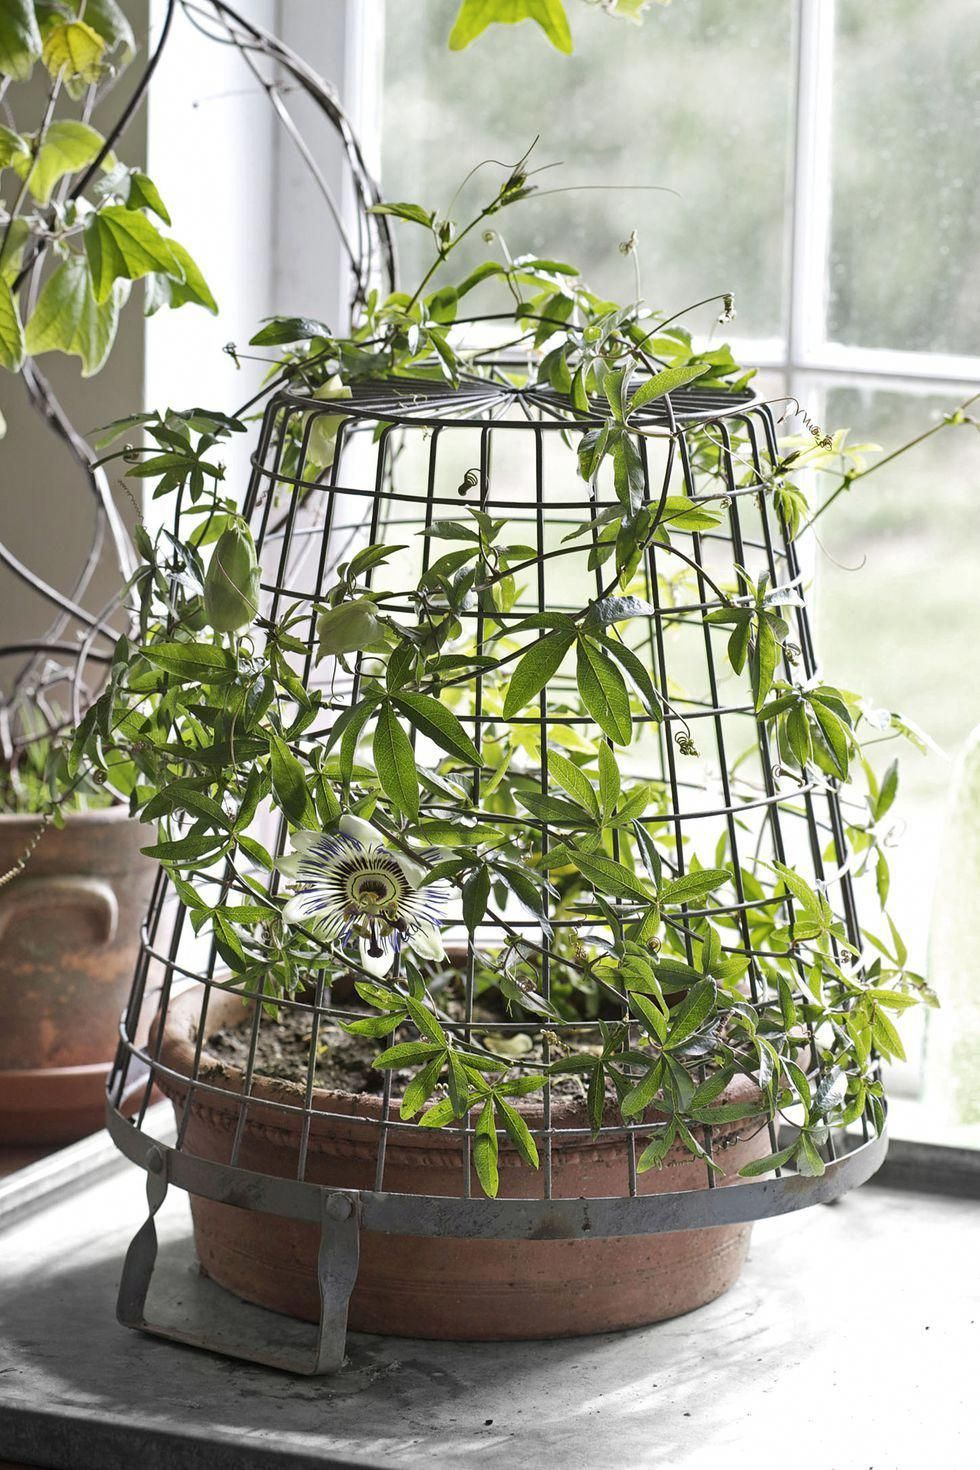 Passionflower unique house plants article gardenvines